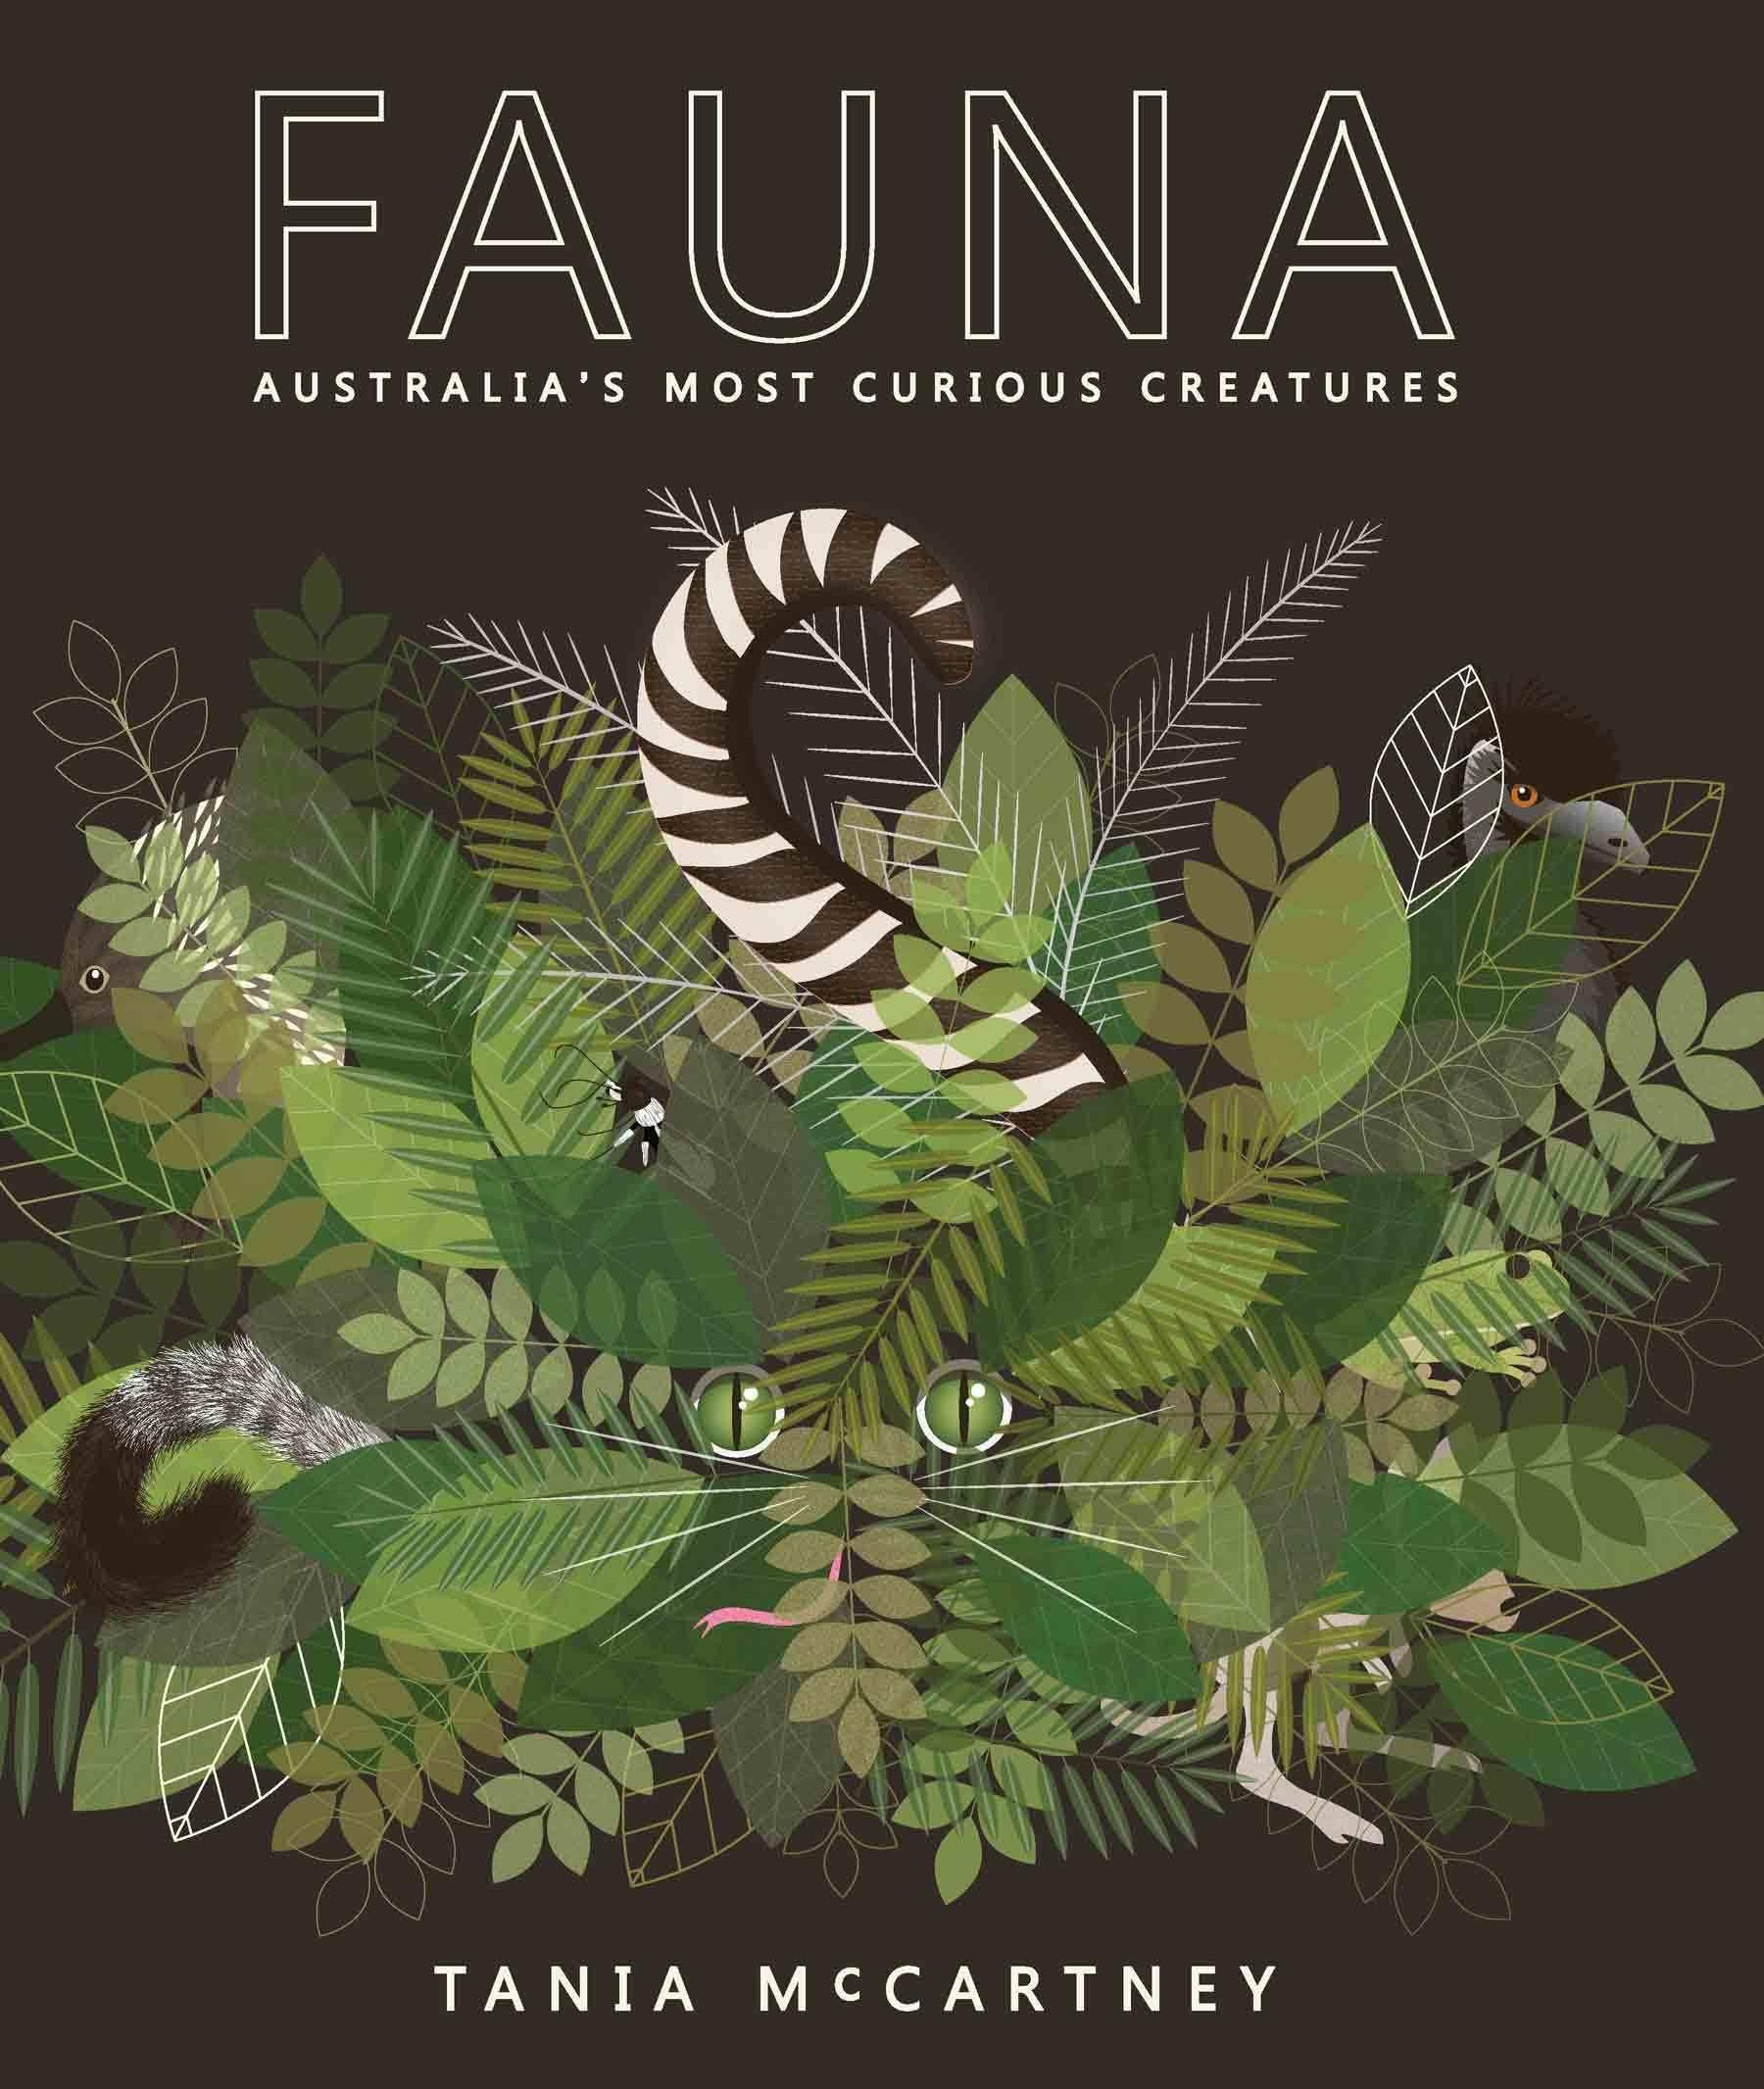 Fauna: Australia's Most Curious Creatures